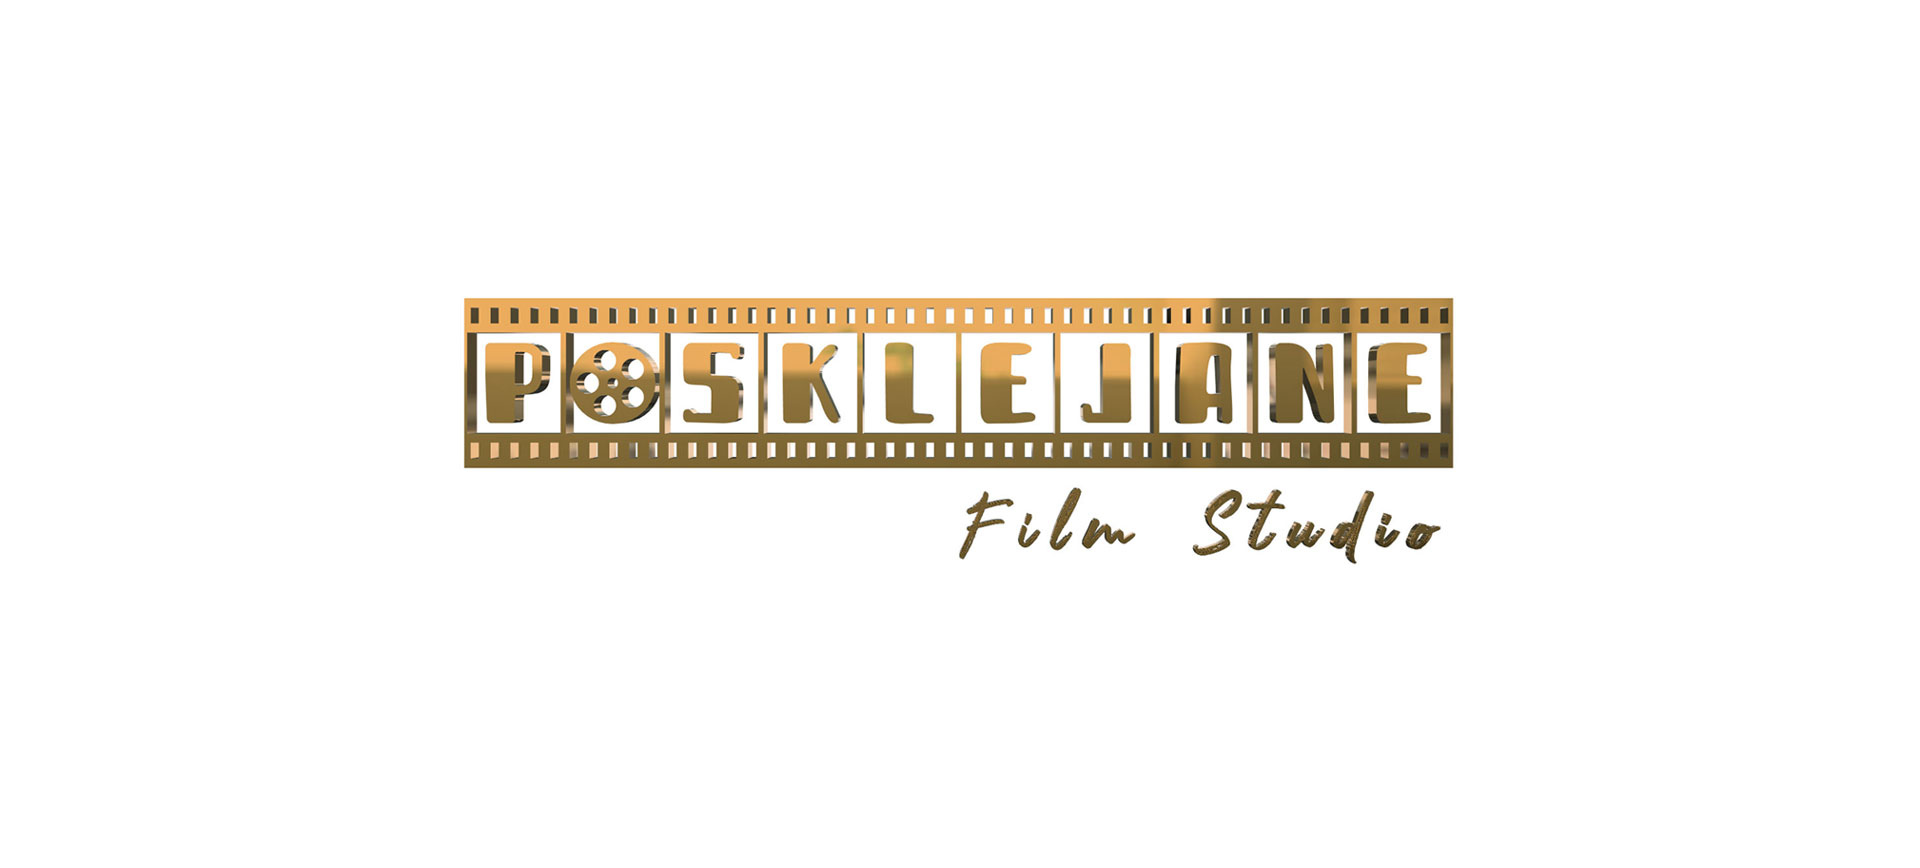 Fall in Love Film Studio - logo Posklejane Film Studio